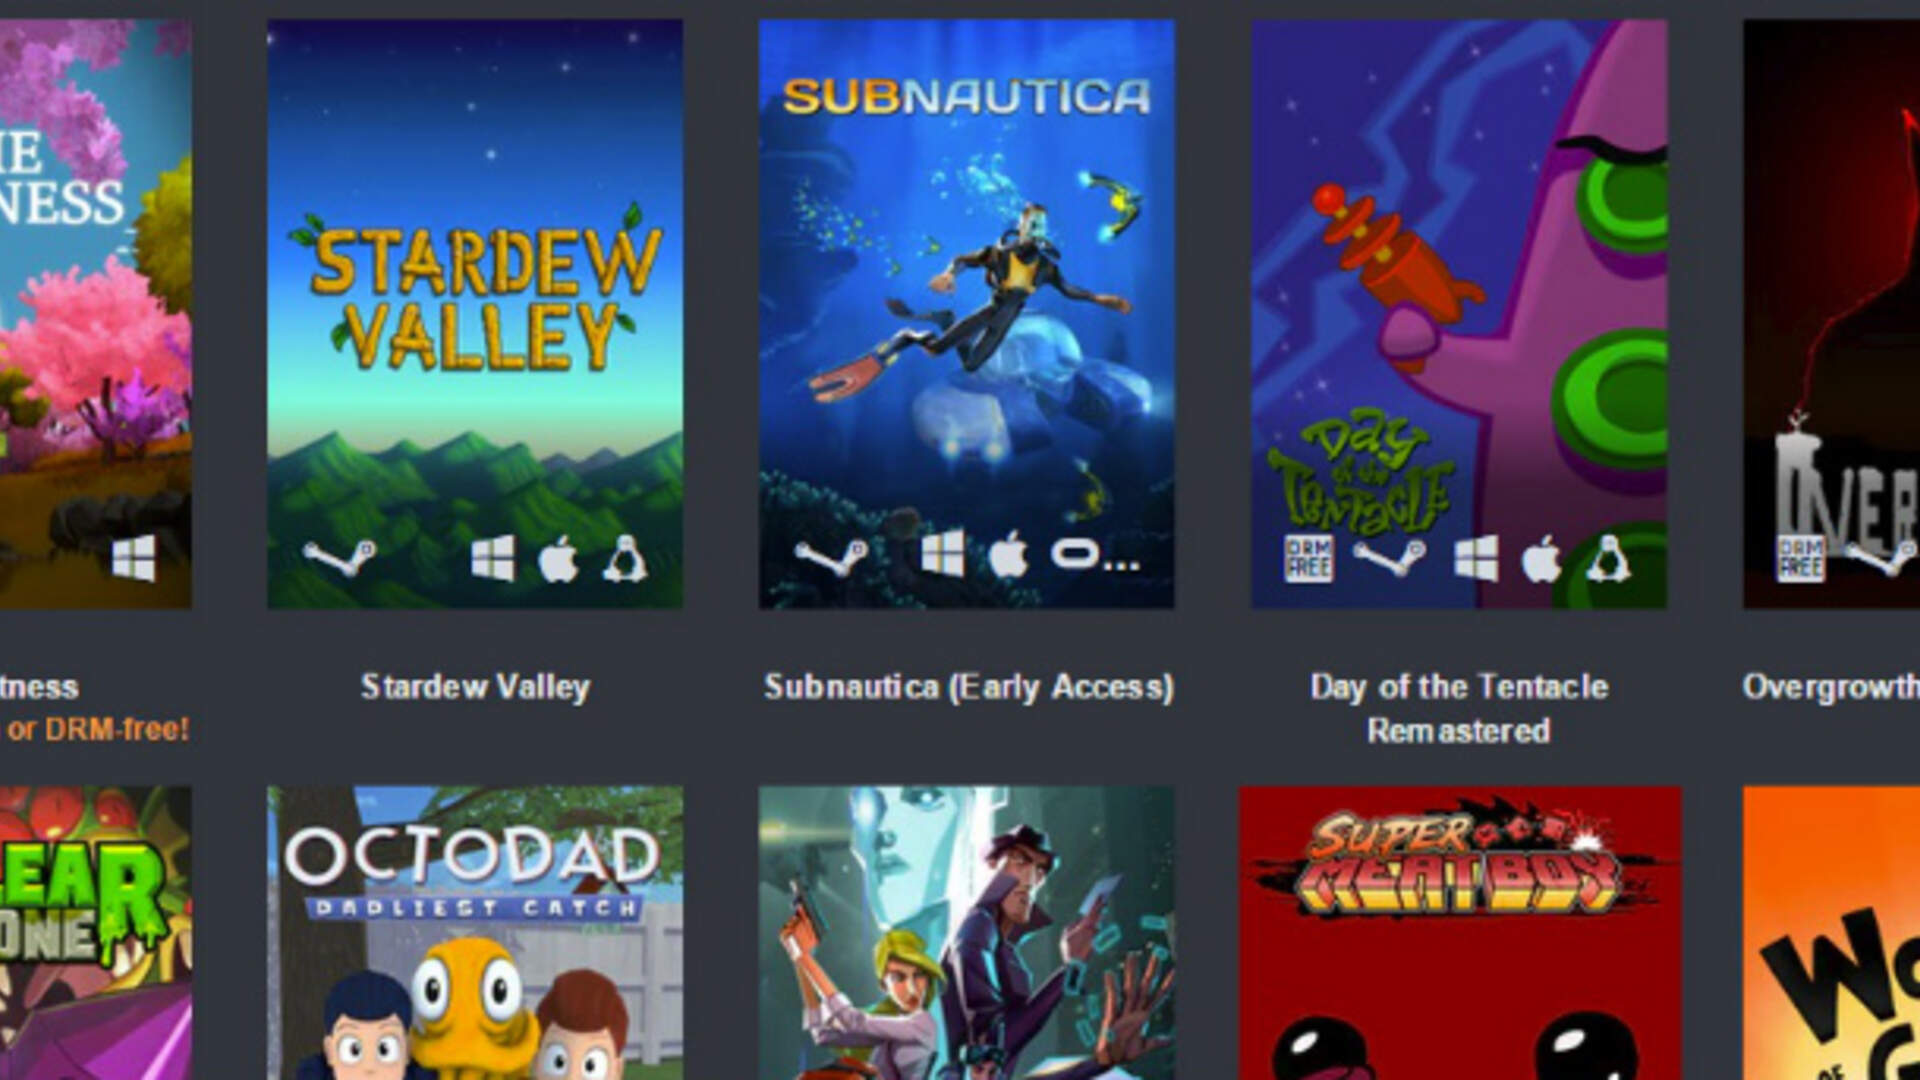 Humble Freedom Bundle Donations Go To The ACLU